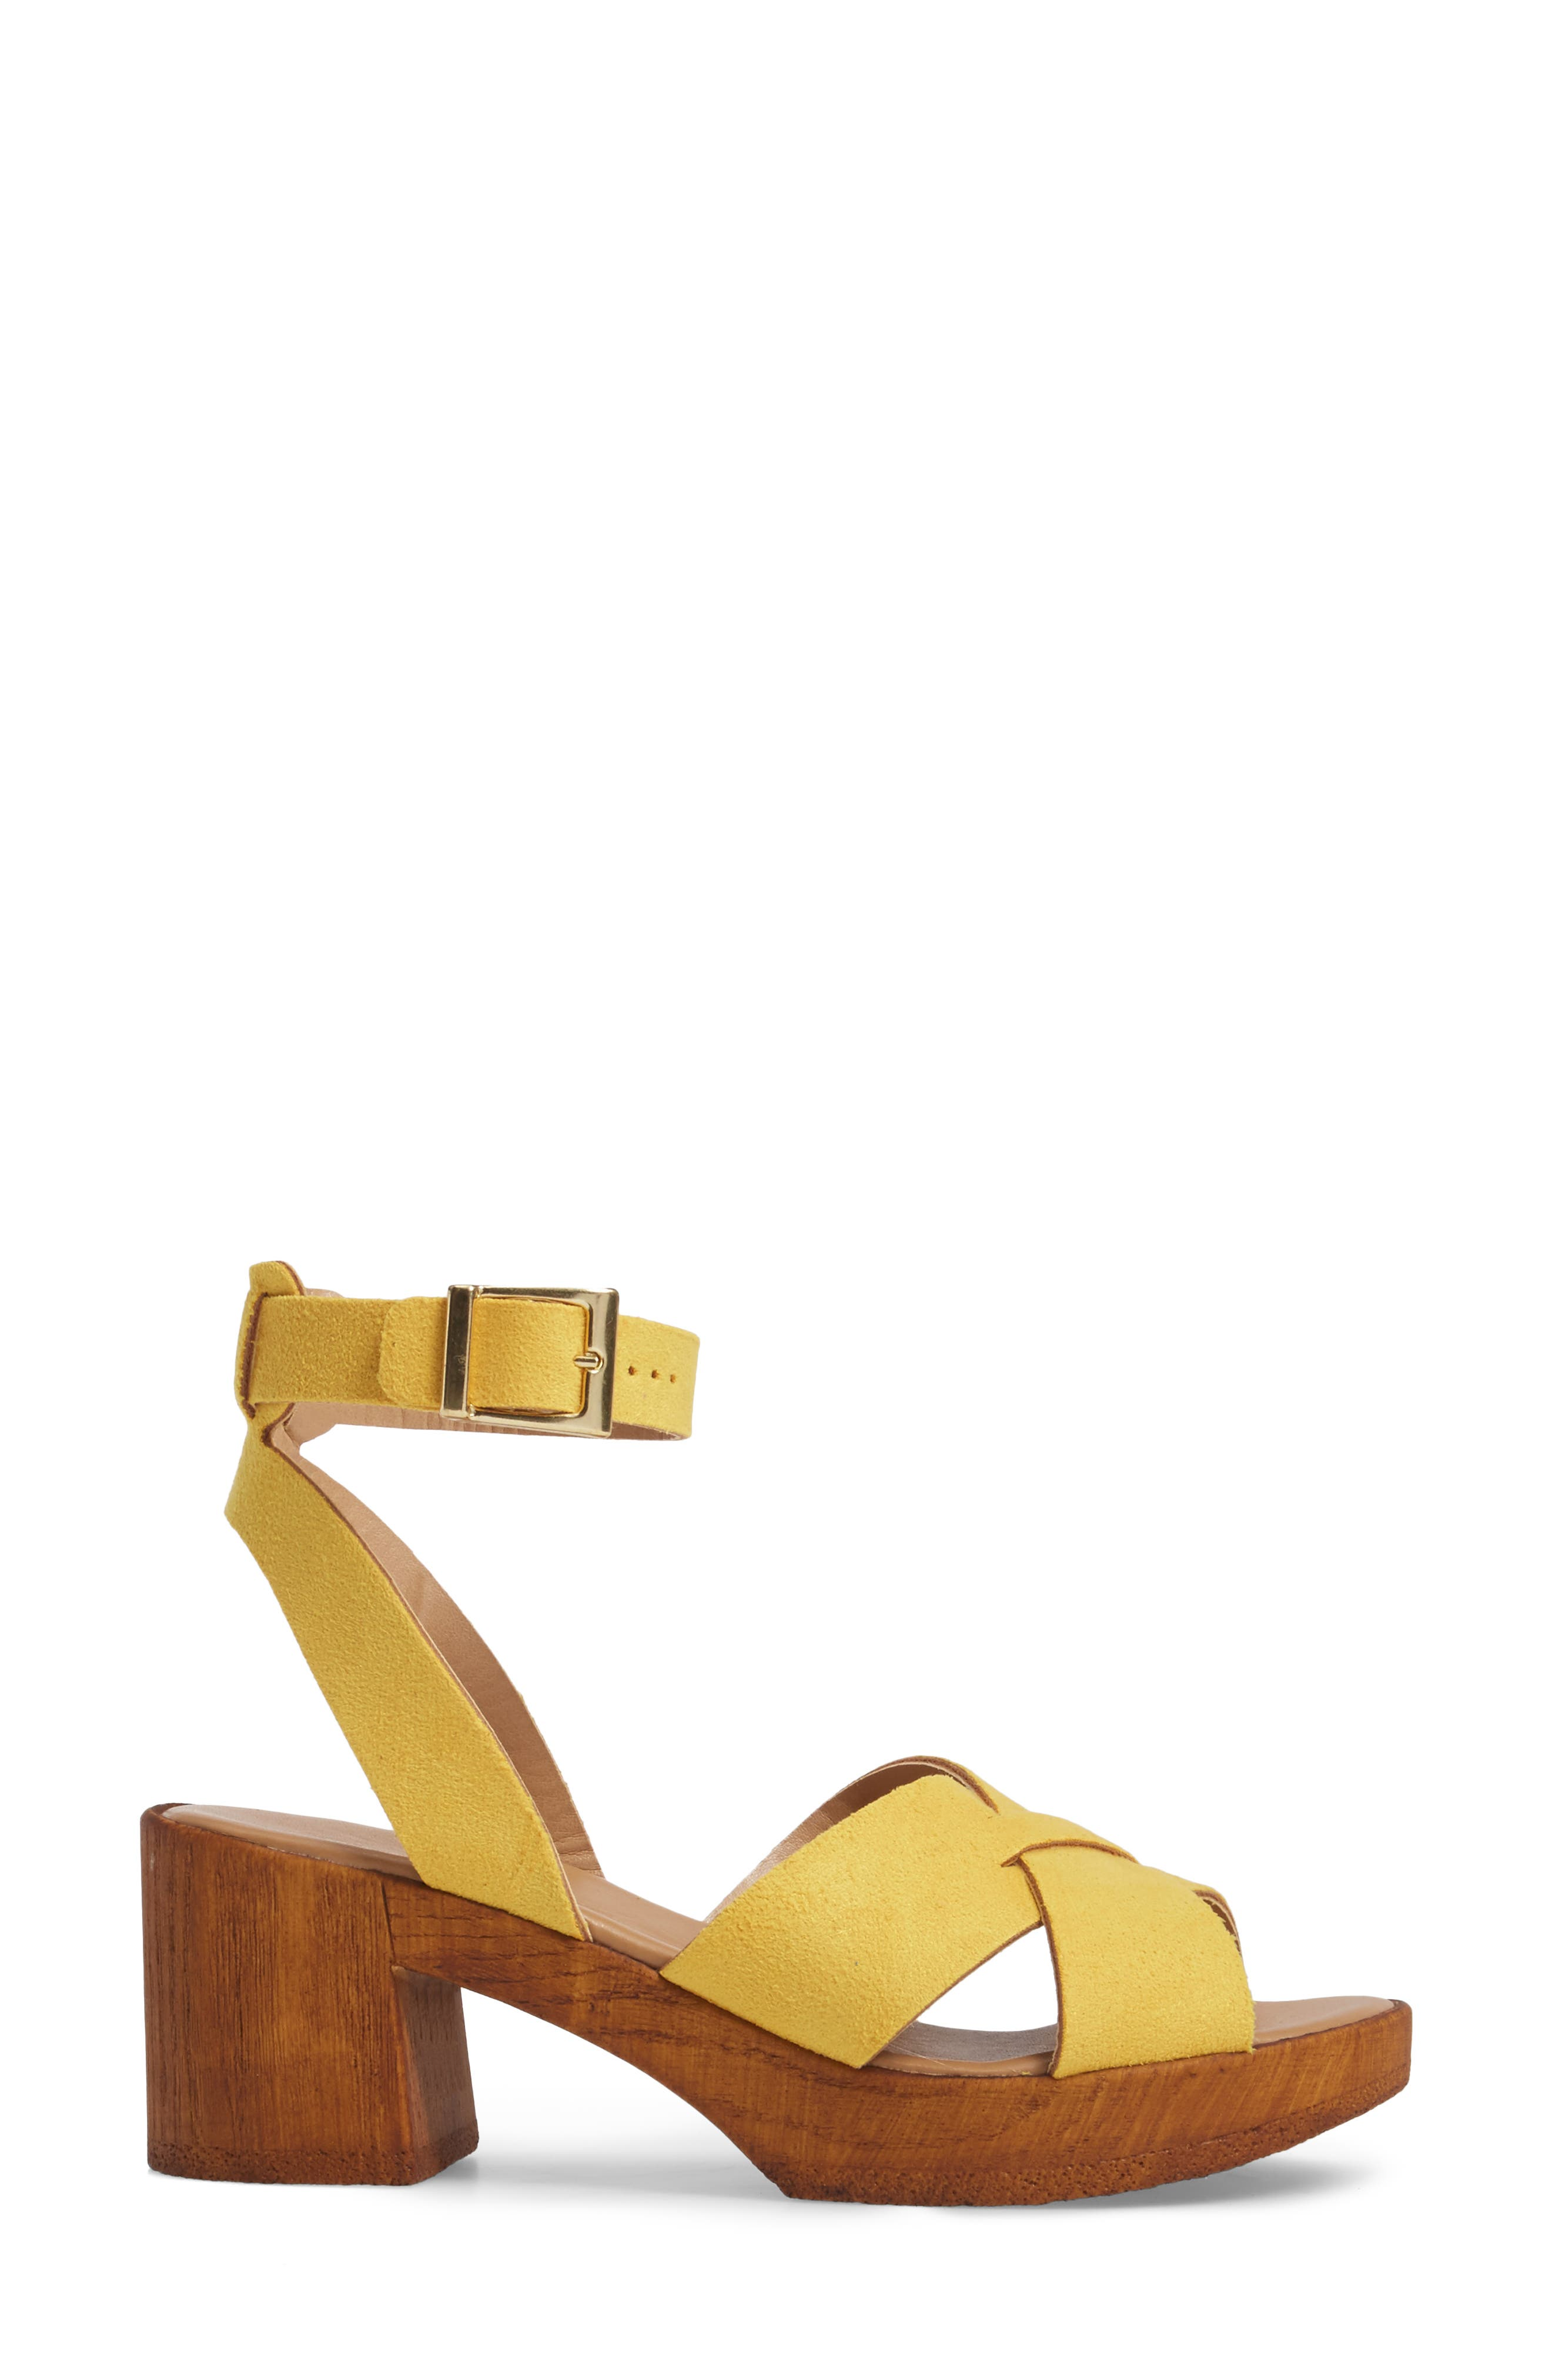 Dolly Block Heel Sandal,                             Alternate thumbnail 5, color,                             Yellow